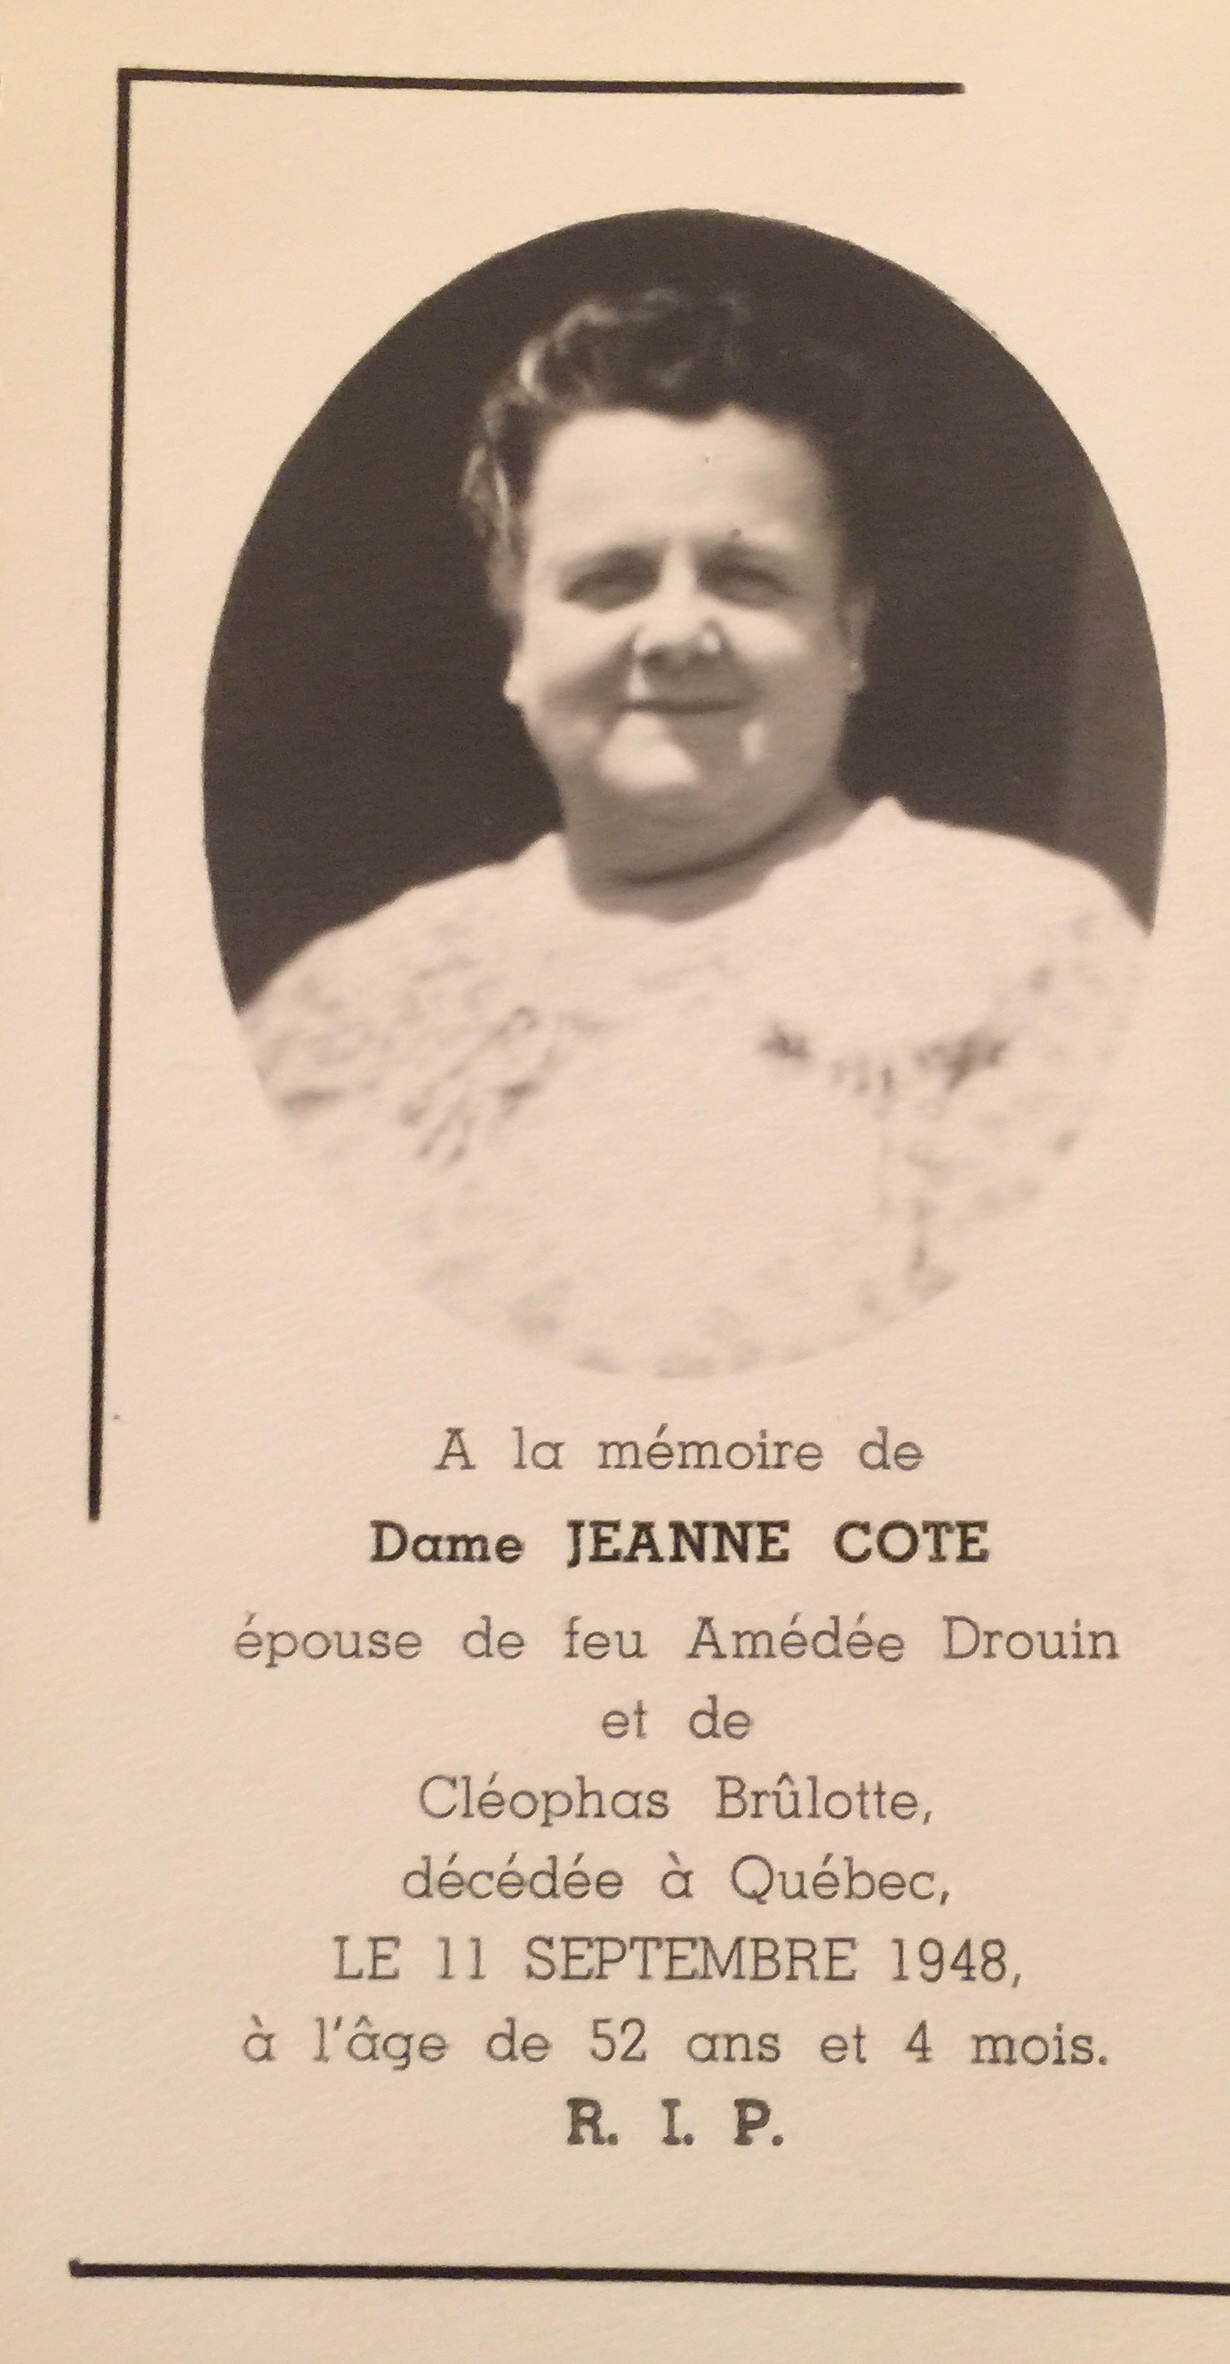 Jeanne Cote